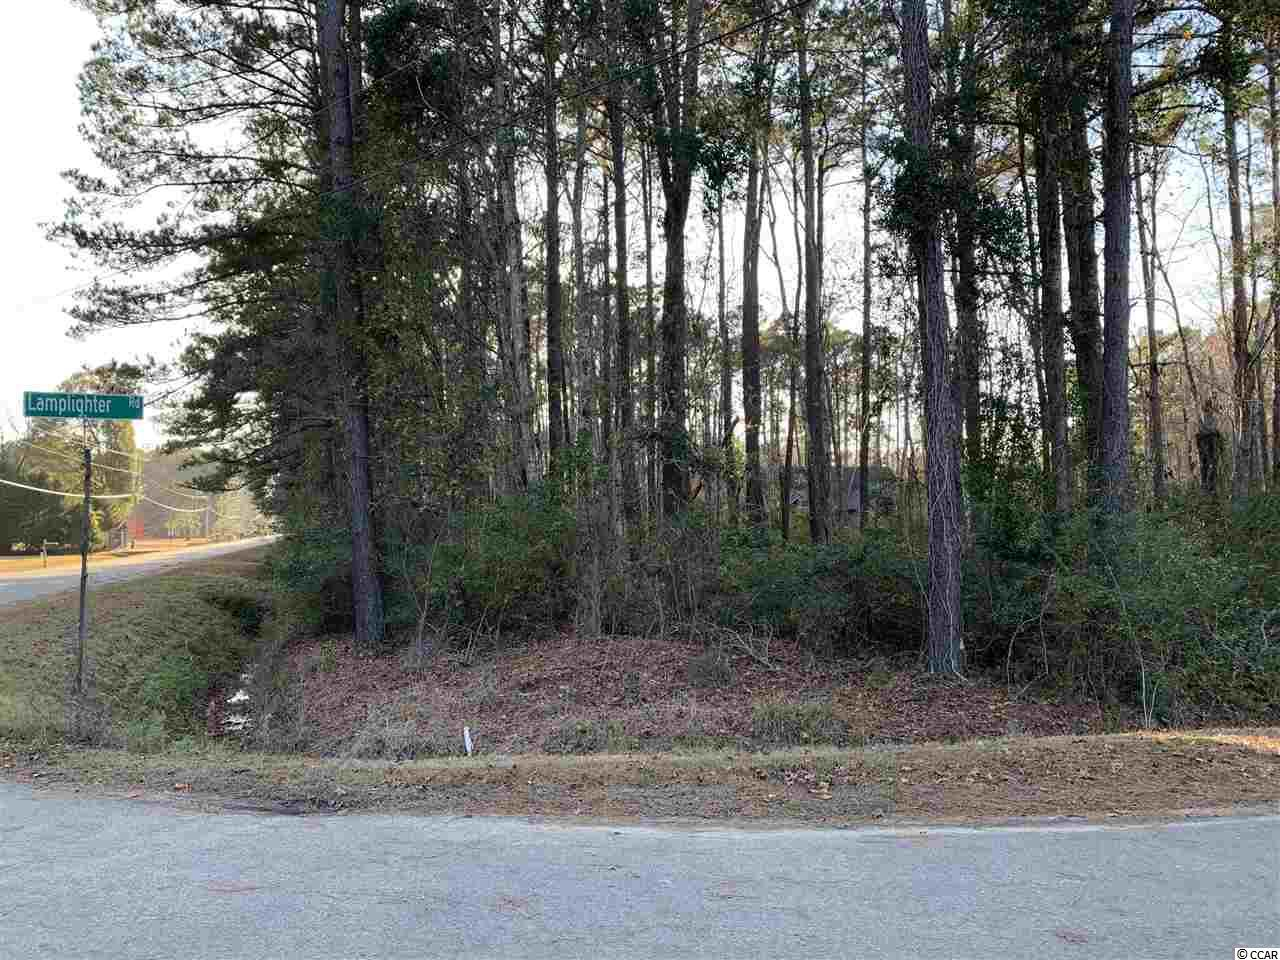 BUILD YOUR DREAM HOME ON THIS BEAUTIFUL 1 ACRE WOODED LOT ON THE CORNER OF SHADY BRANCH AND LAMPLIGHTER RD. TWO SEPARATE DRIVEWAY ENTRANCES WITH TILES(PIPING) ALREADY IN PLACE.  BOTH SIDES OF THE STREET ARE LINED WITH BEAUTIFUL CUSTOM BUILT HOMES. NO HOA AND THE LOT IS LOCATED VERY NEAR TO THE ENTERPRISE LANDING BOAT RAMP AND ICW. DONT MISS OUT!